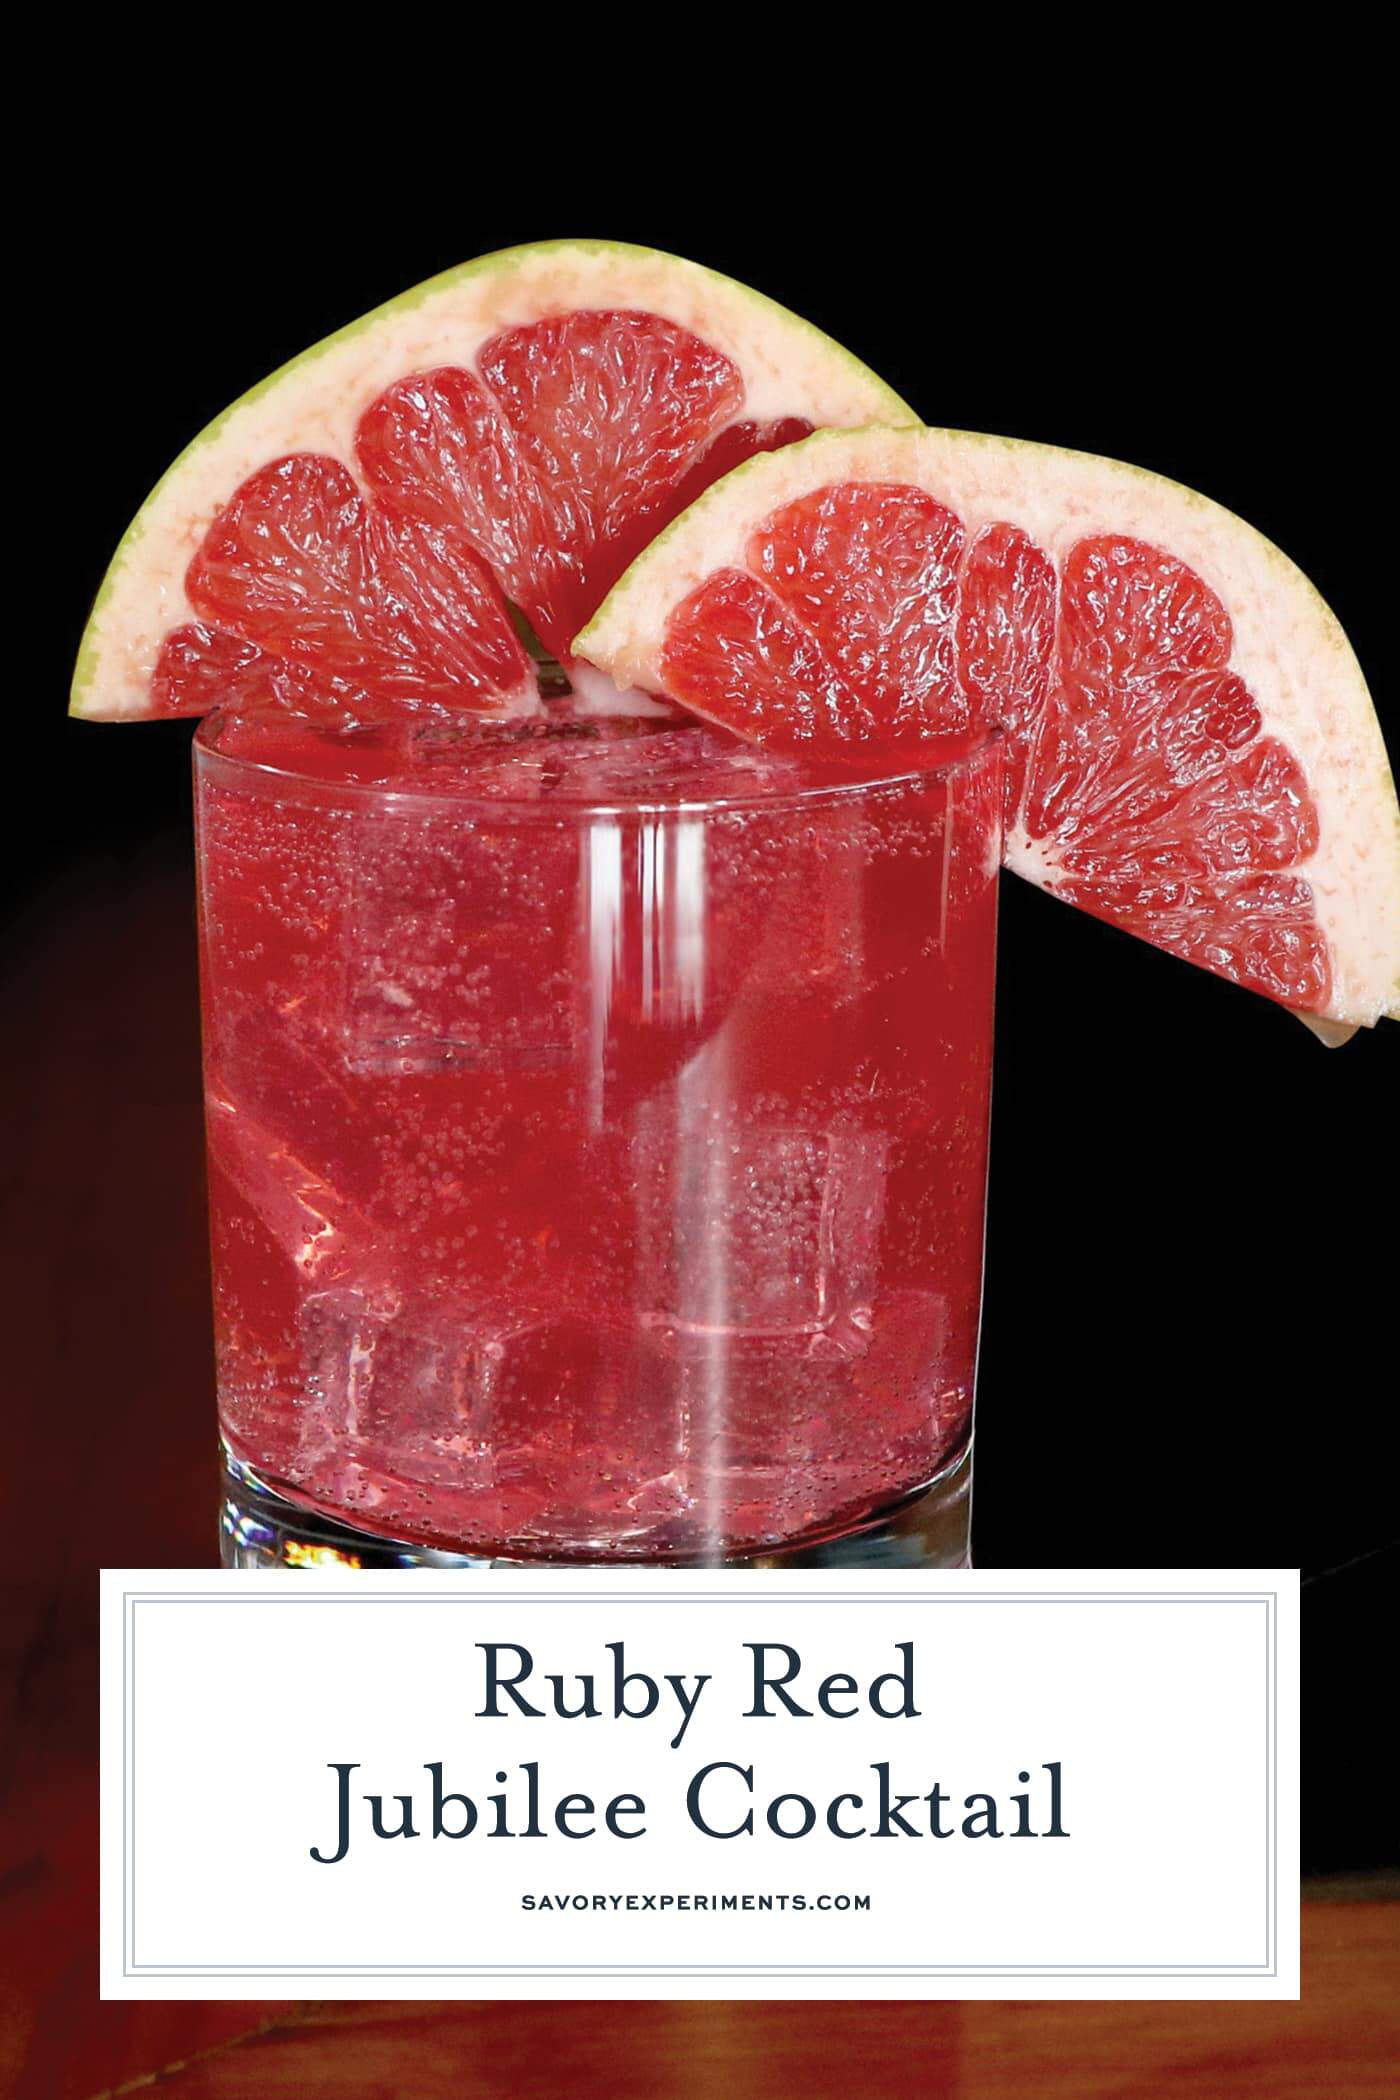 Ruby Red Jubilee Cocktail is the perfect holiday cocktail made with Sagamore Spirit rye whiskey, grapefruit and lime juice and cinnamon syrup. #whiskeycocktails www.savoryexperiments.com